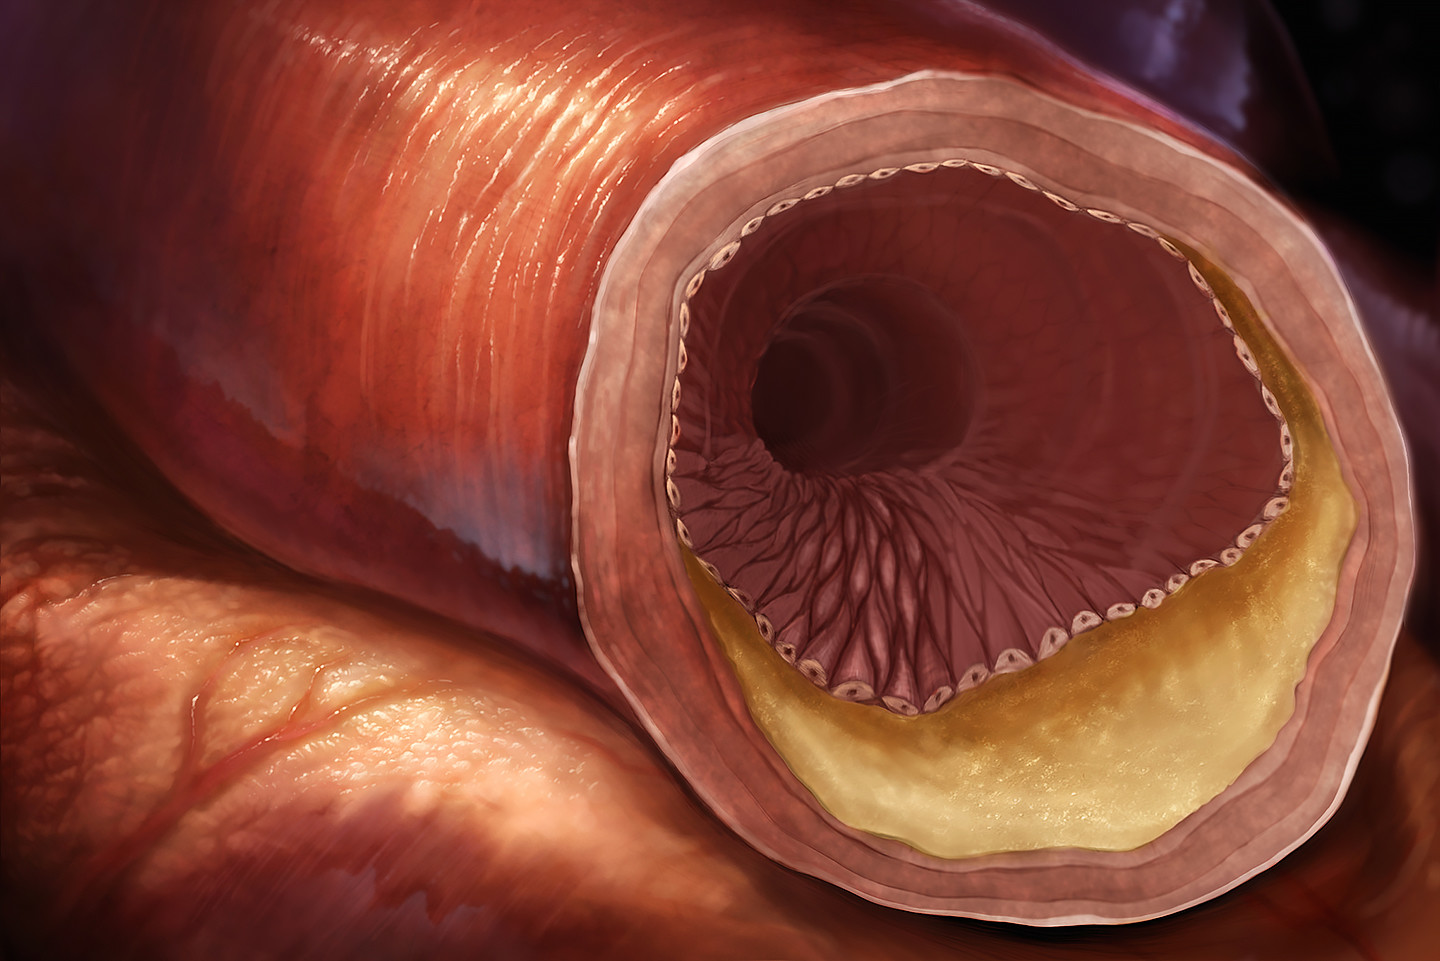 Cholesterol buildup in artery concept